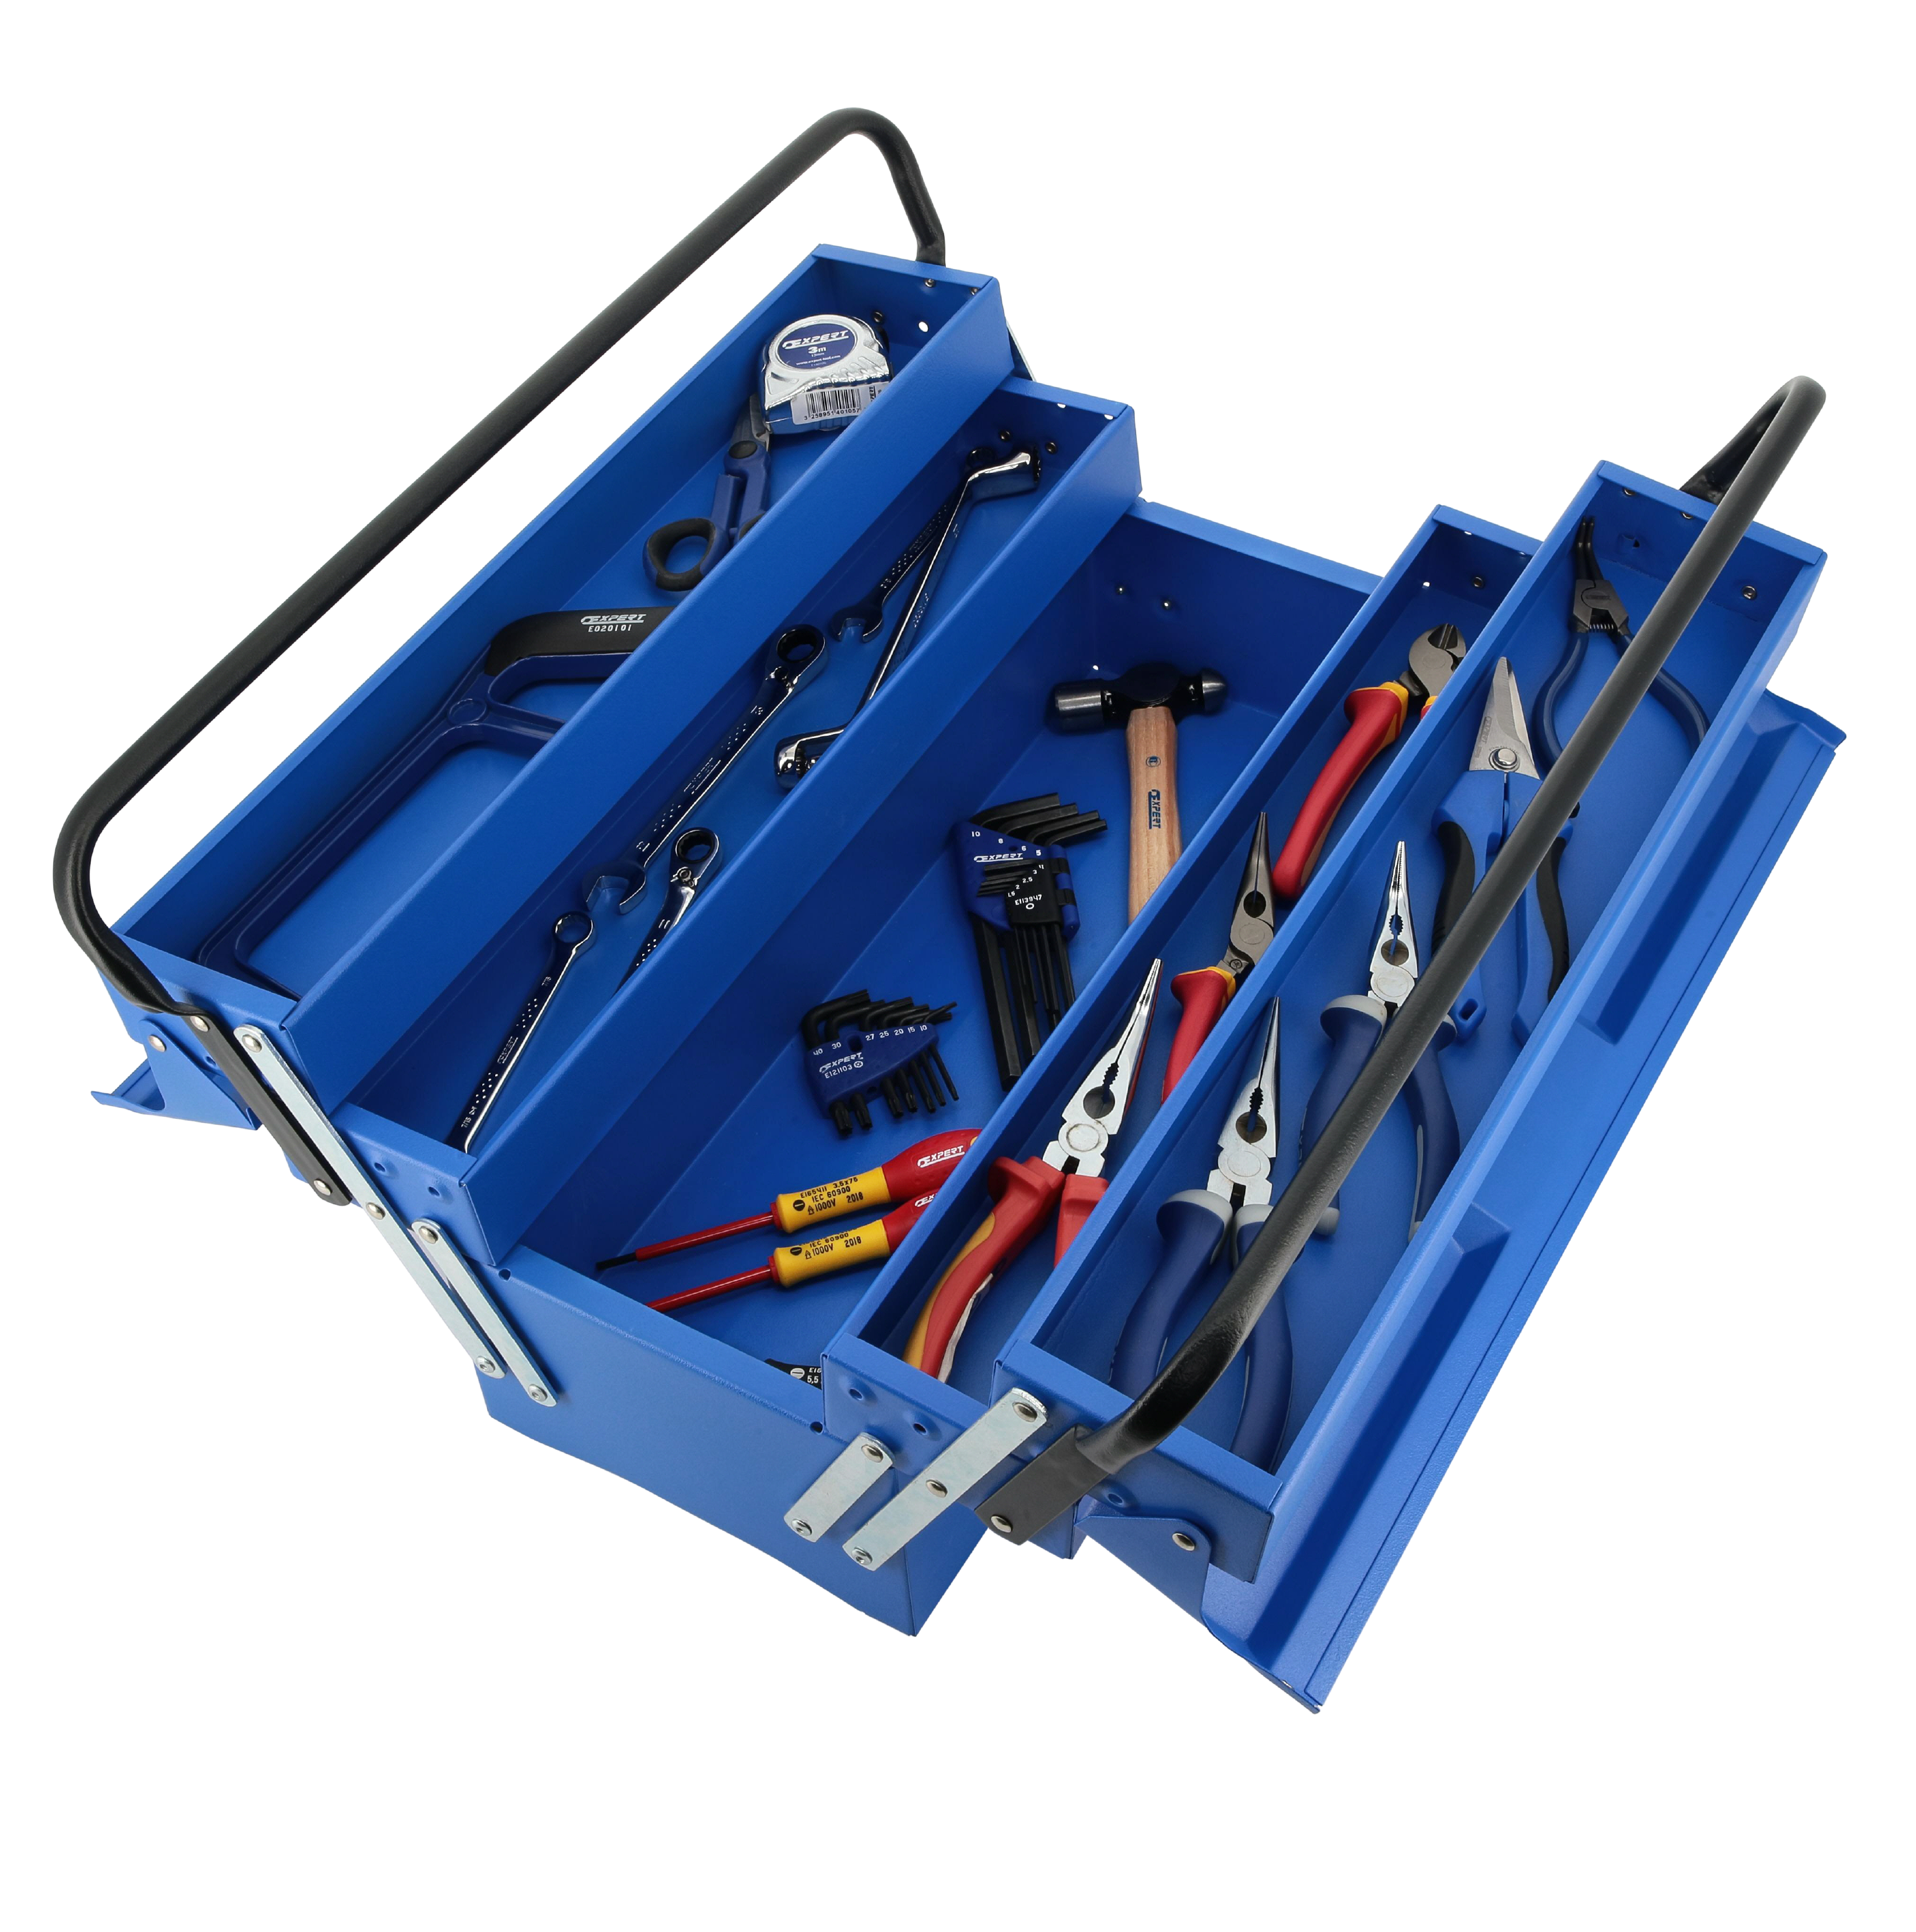 - G2020 20 Inch 5 tray cantilever tool box